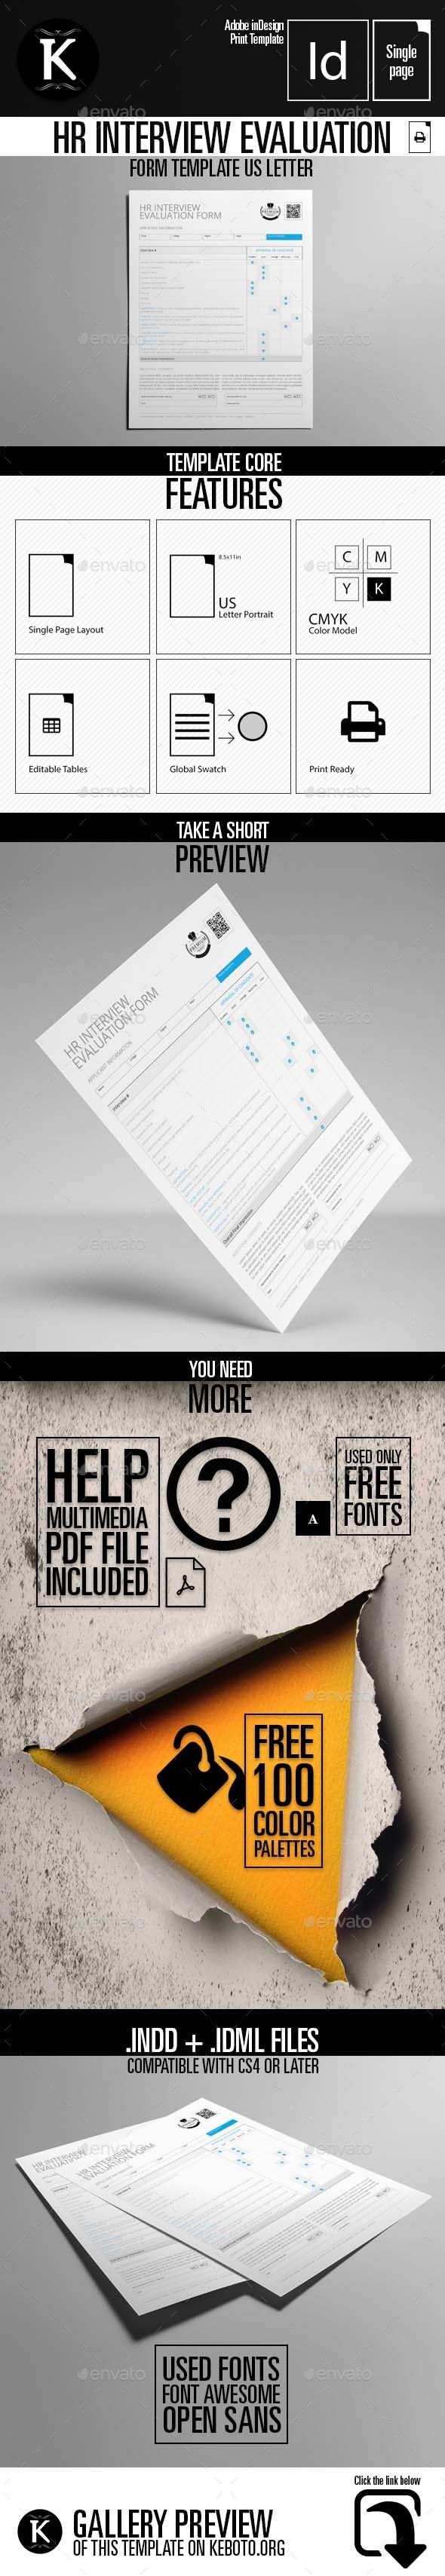 HR Interview Evaluation Form Template US Letter — InDesign INDD #interview template #evaluation • Available here → https://graphicriver.net/item/hr-interview-evaluation-form-template-us-letter/17164168?ref=pxcr